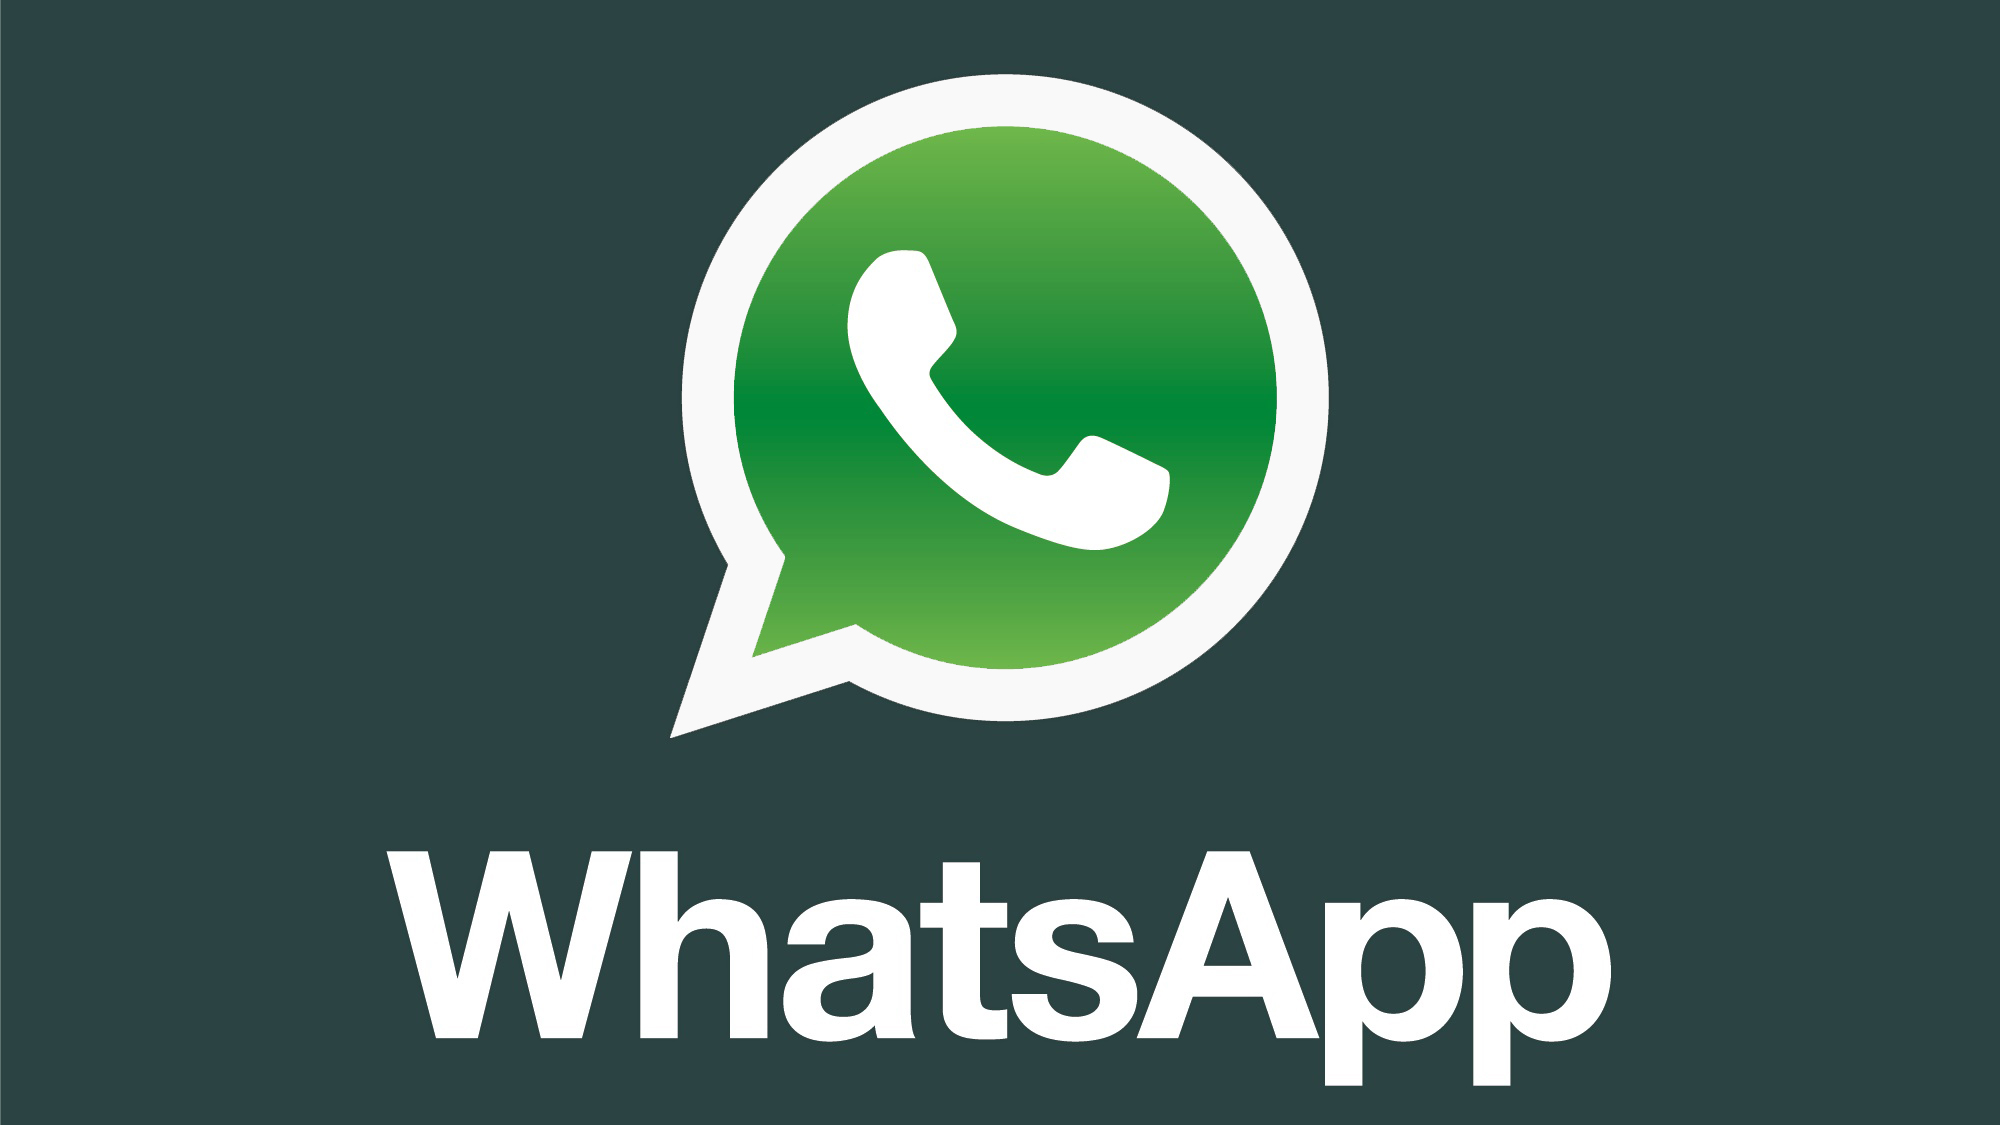 WhatsApp Messenger update finally brings the long-awaited voice calling feature